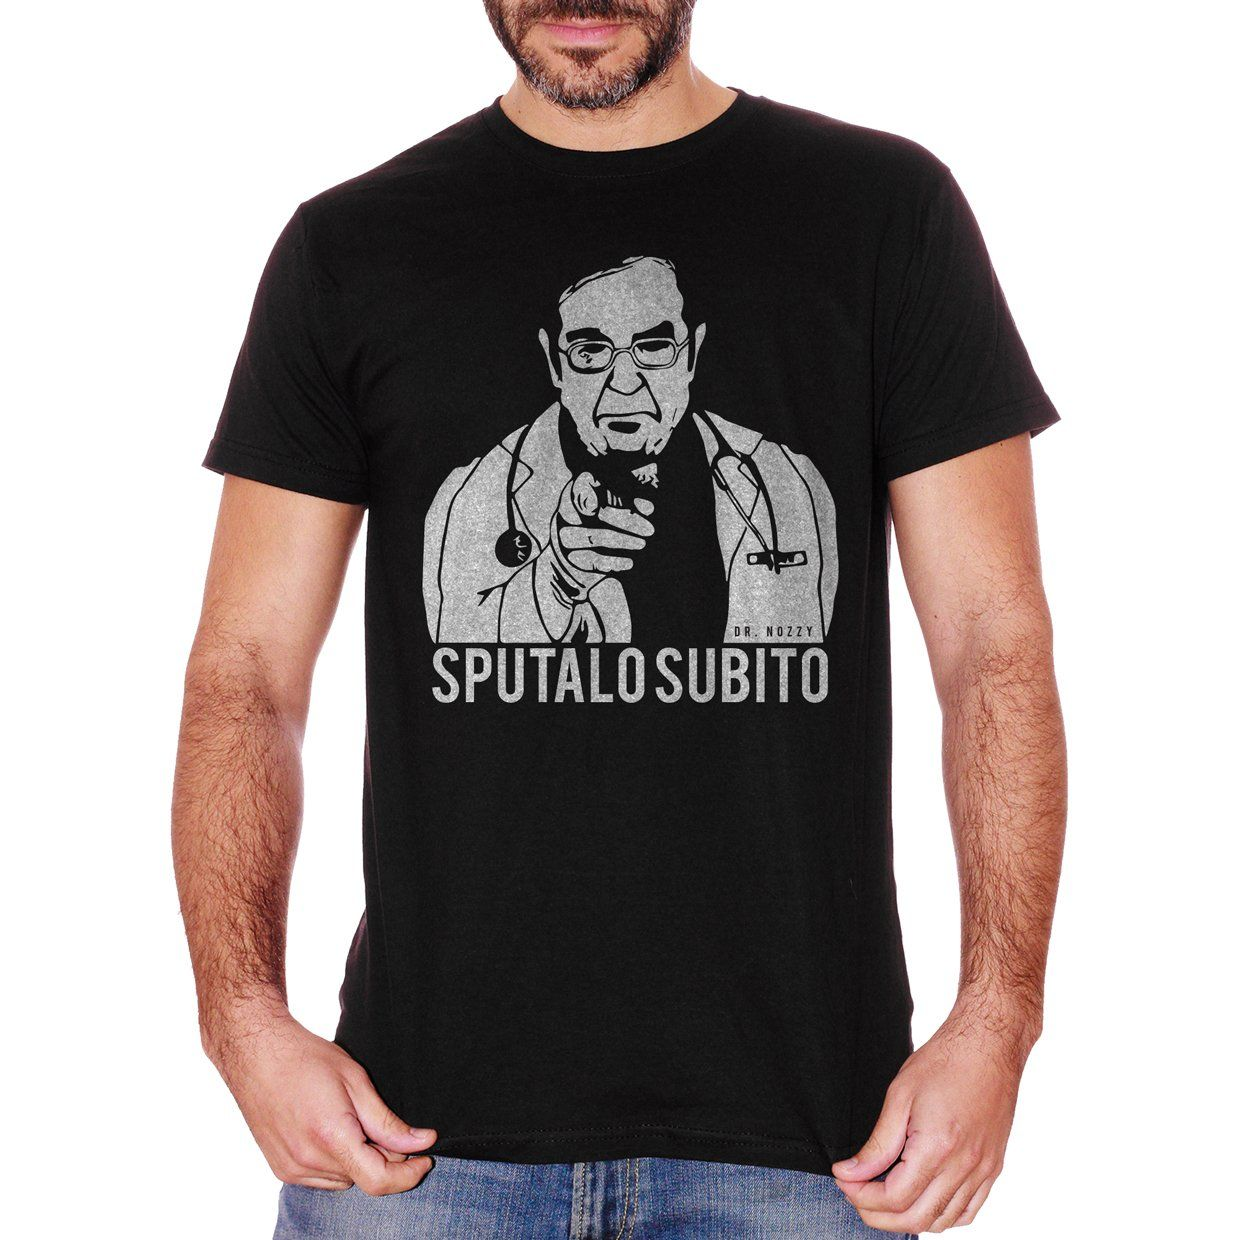 T-Shirt Dr Nozzy Sputalo Subito -Meme - Choose ur Color